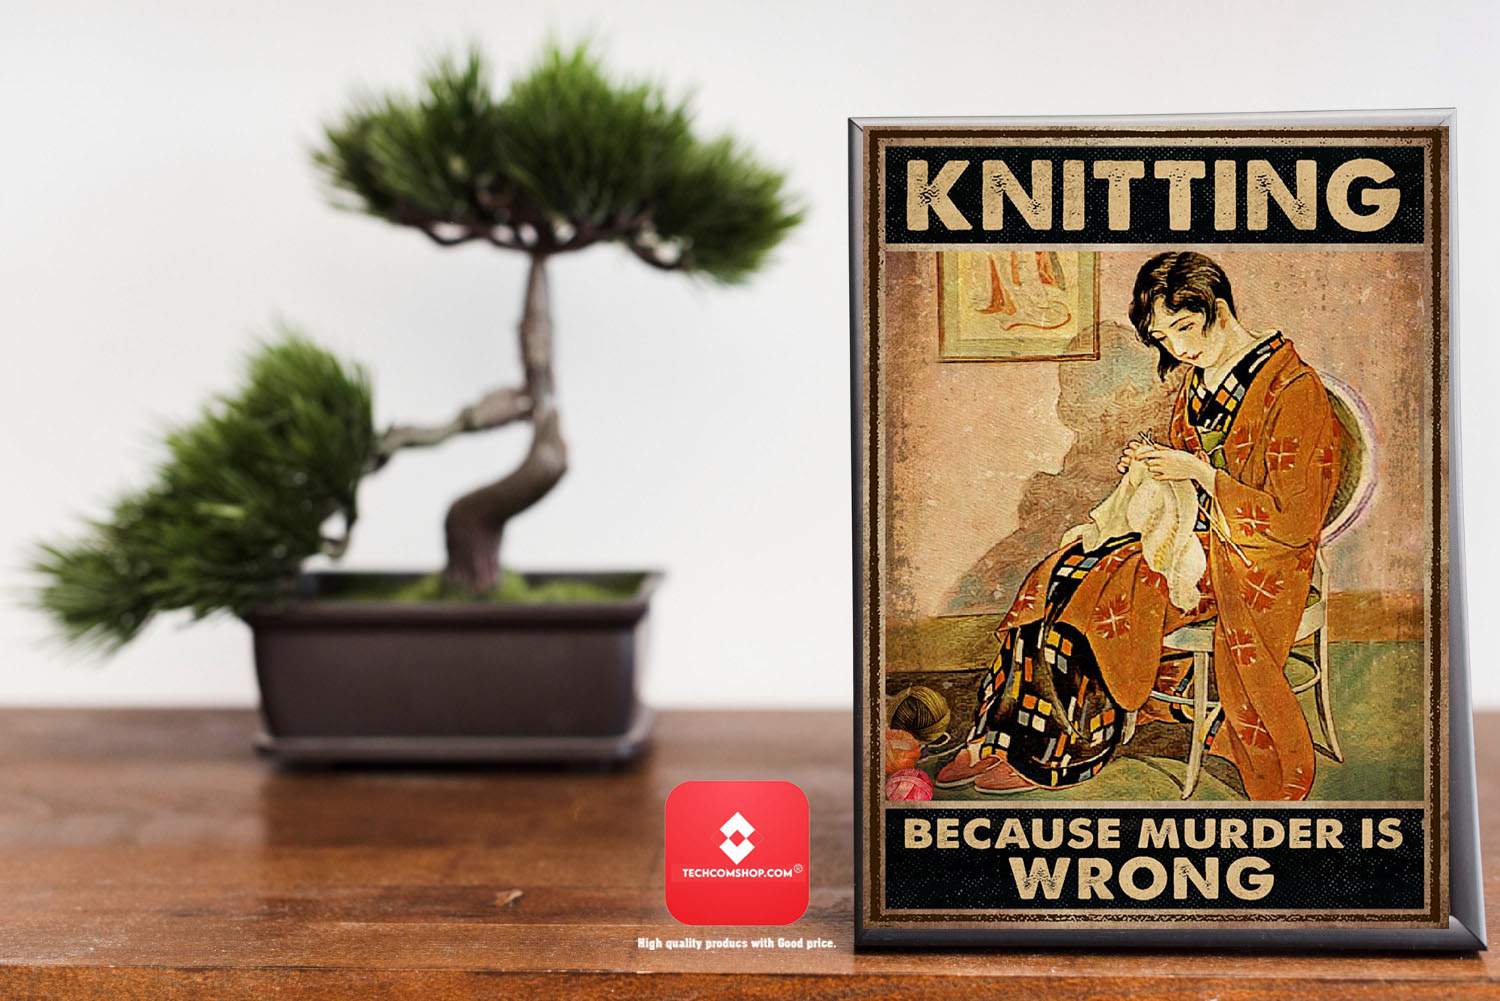 Knitting because murder is wrong poster 7